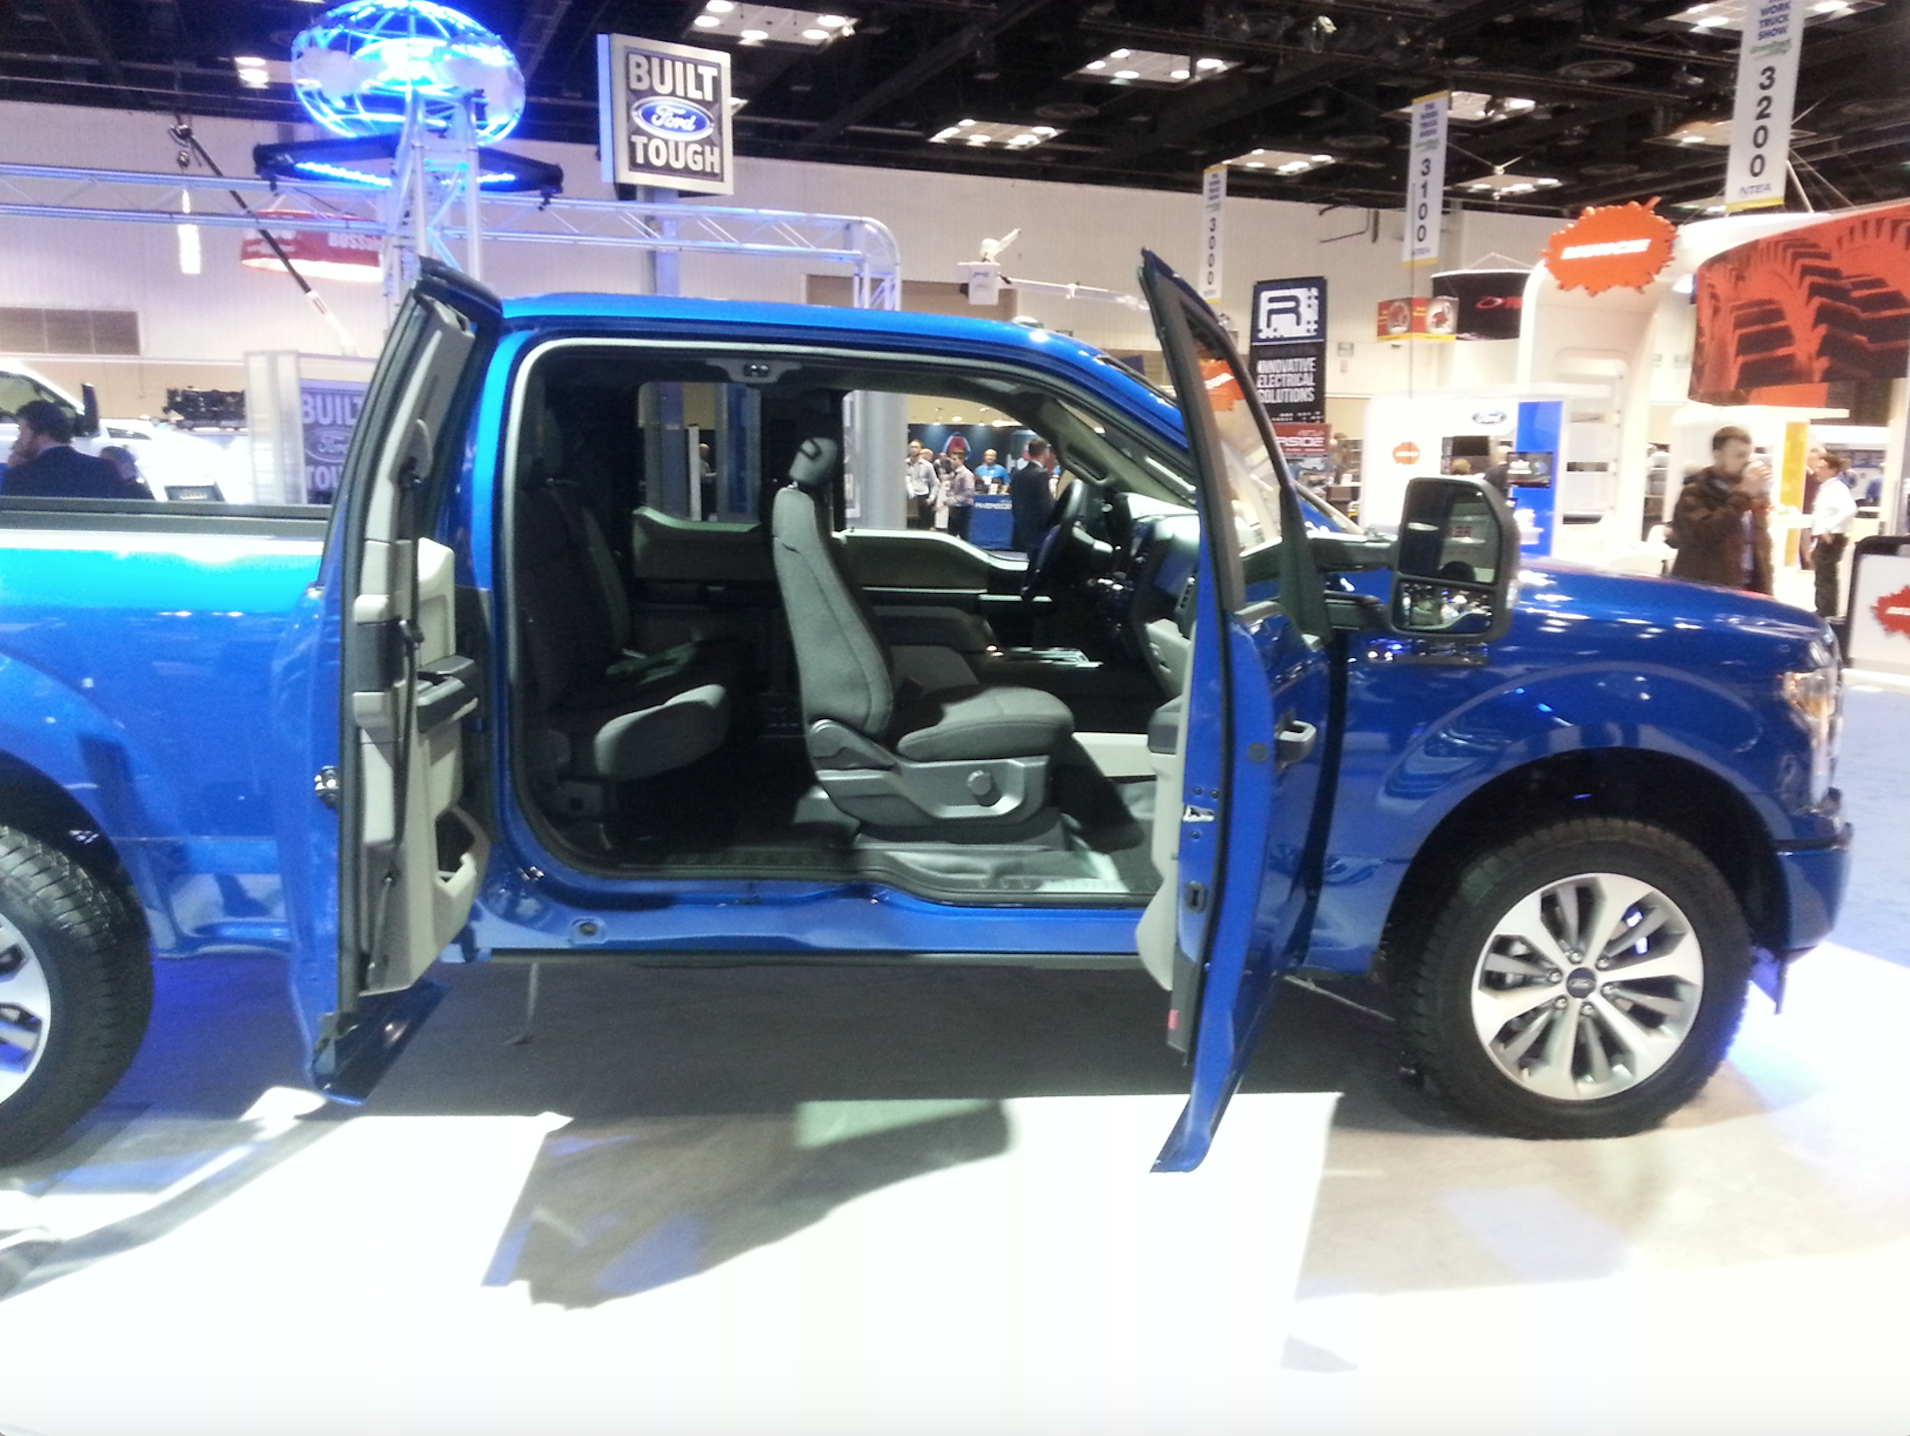 2018 Ford F 150 featured at Work Truck Show